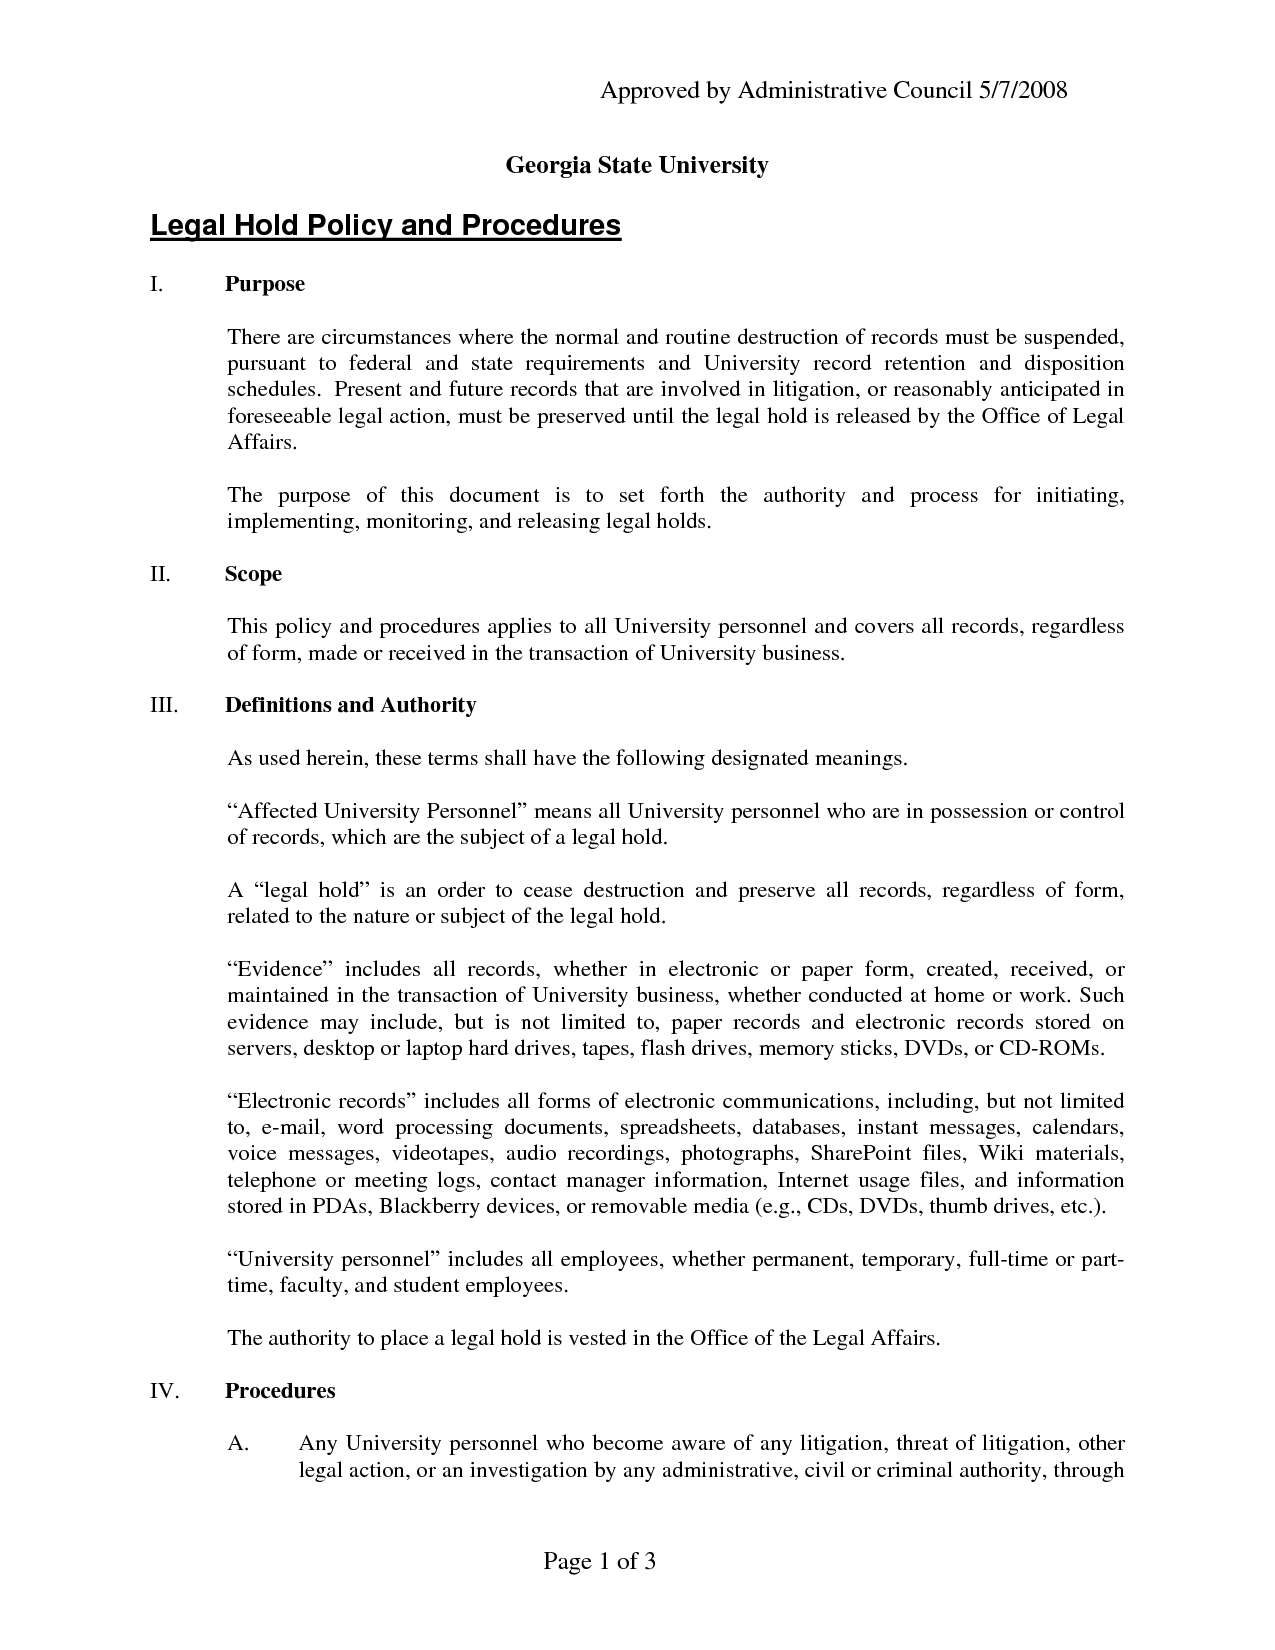 Legal Document Template Approved by Administrative by